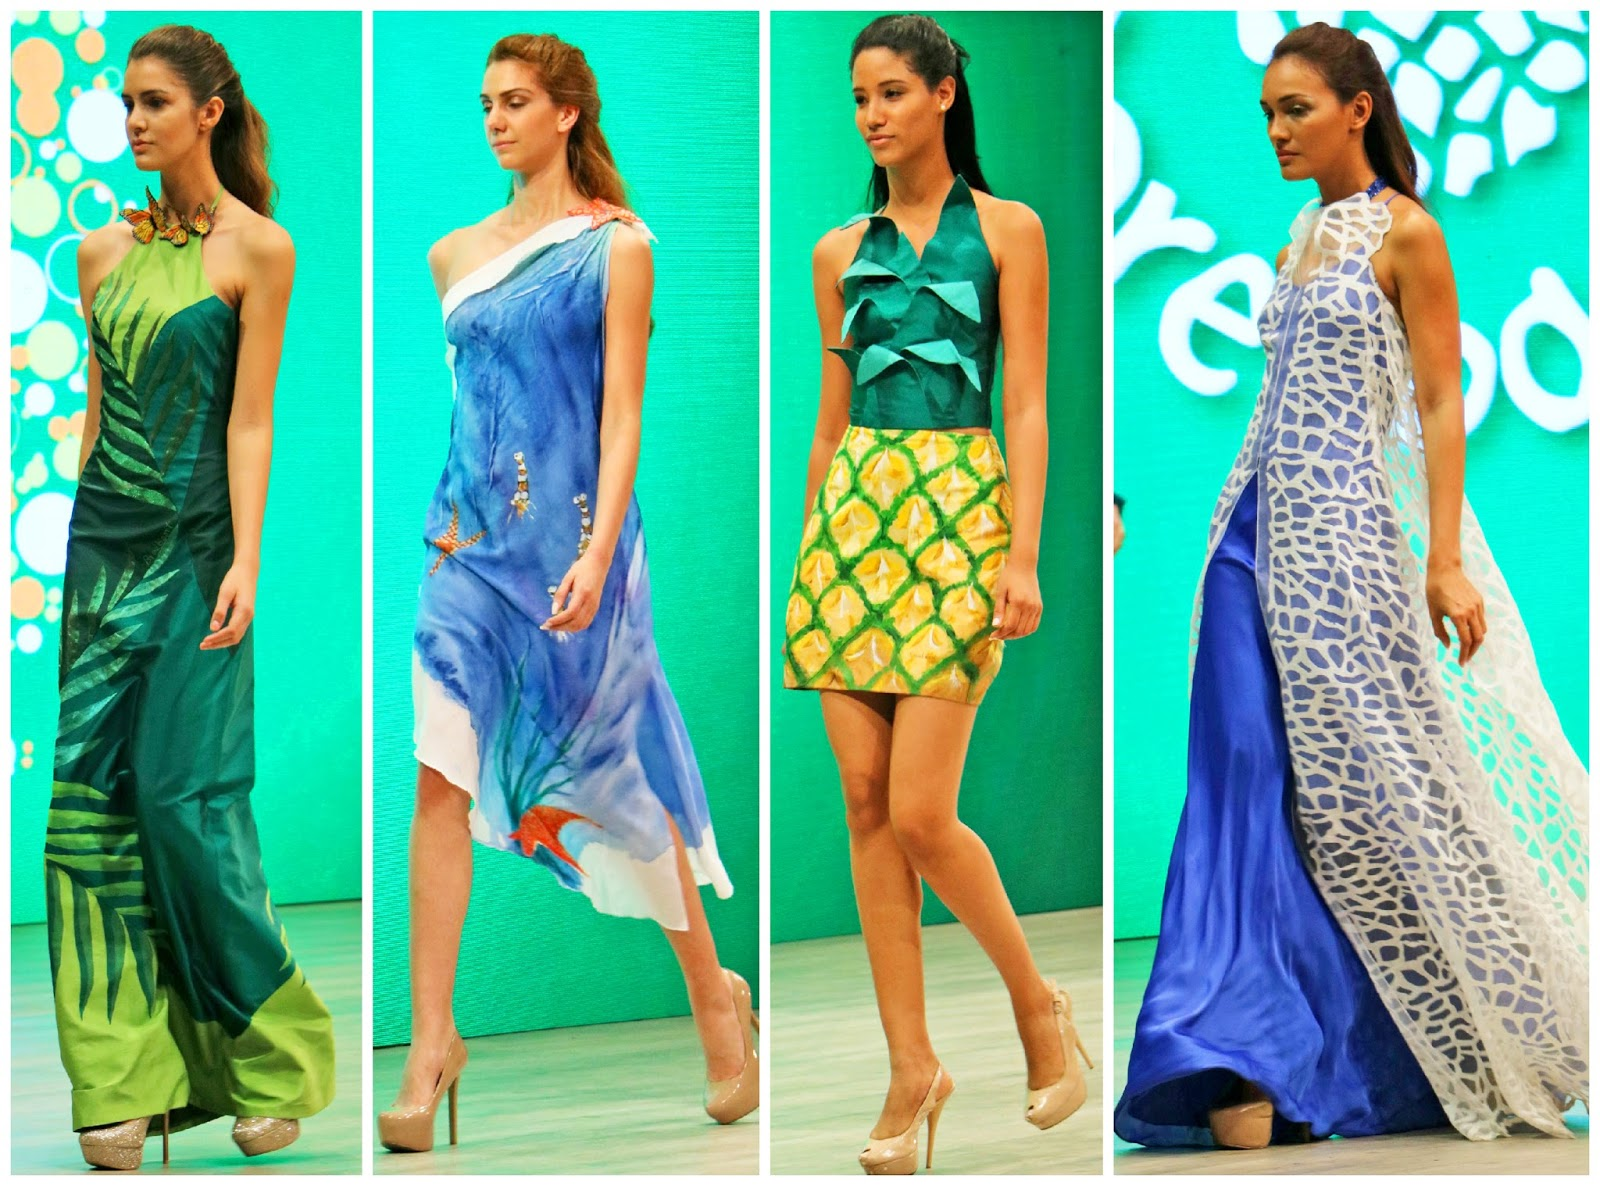 Gorgeous designs inspired by nature!